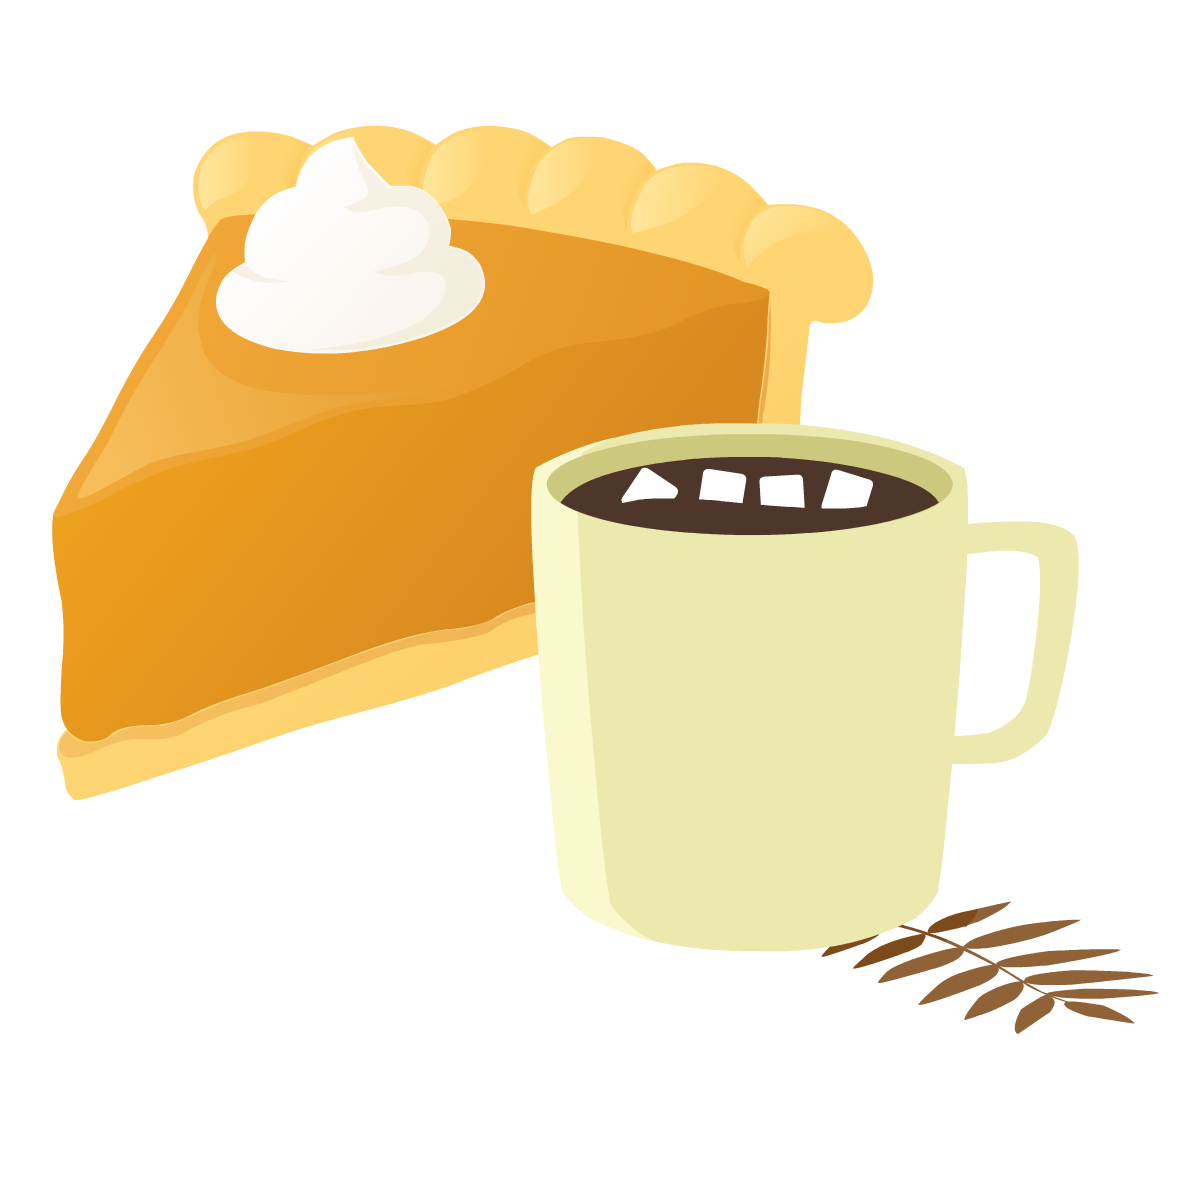 Pumpkin pie and hot chocolate clip art